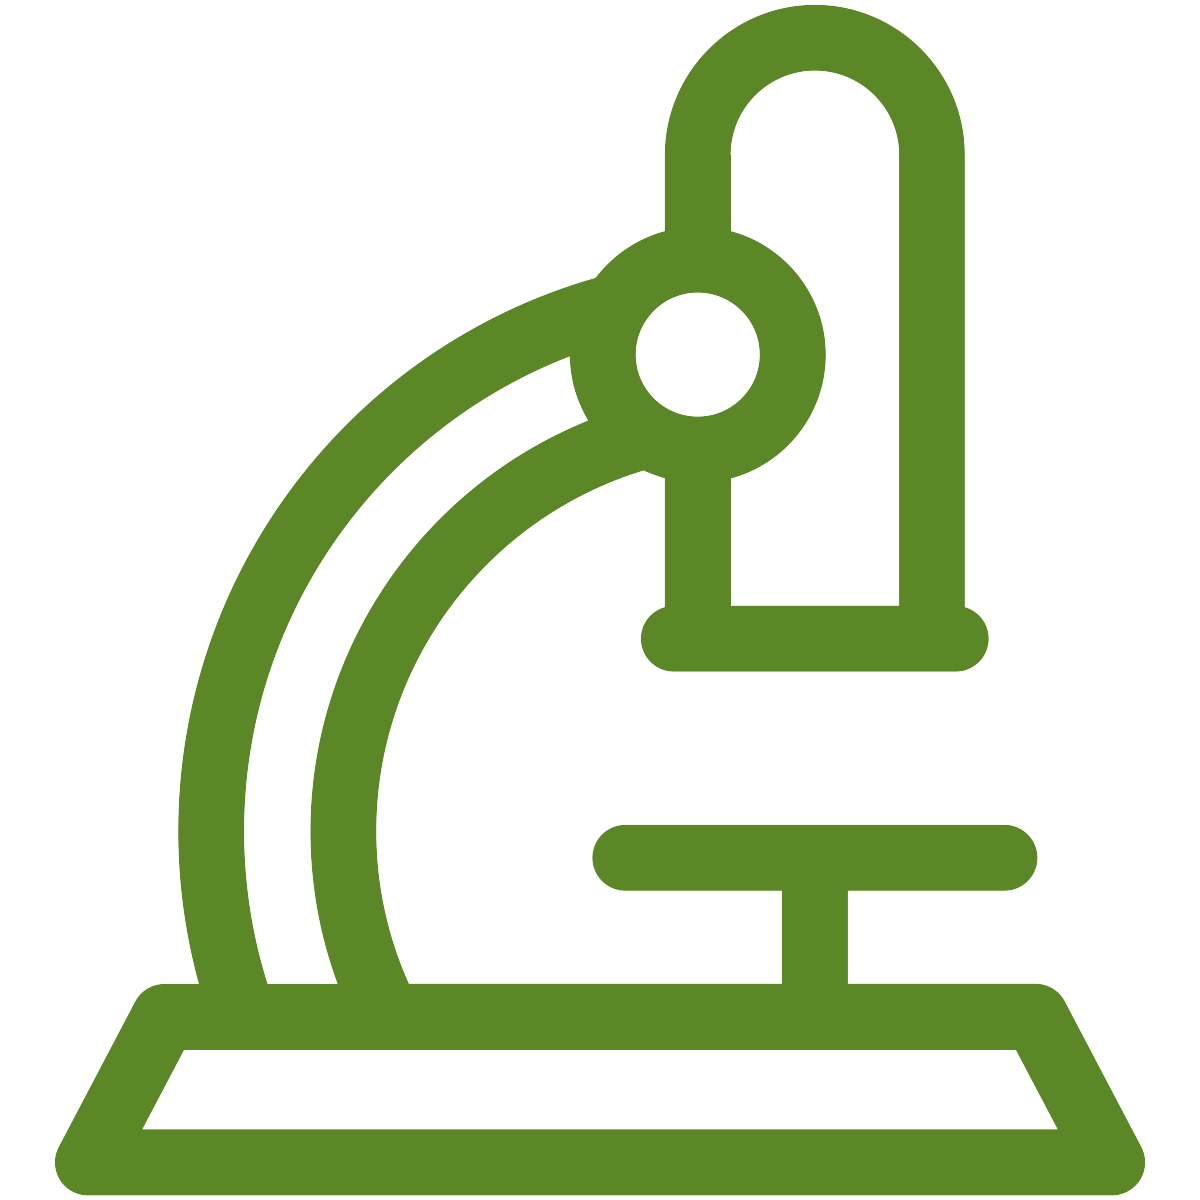 green microscope icon